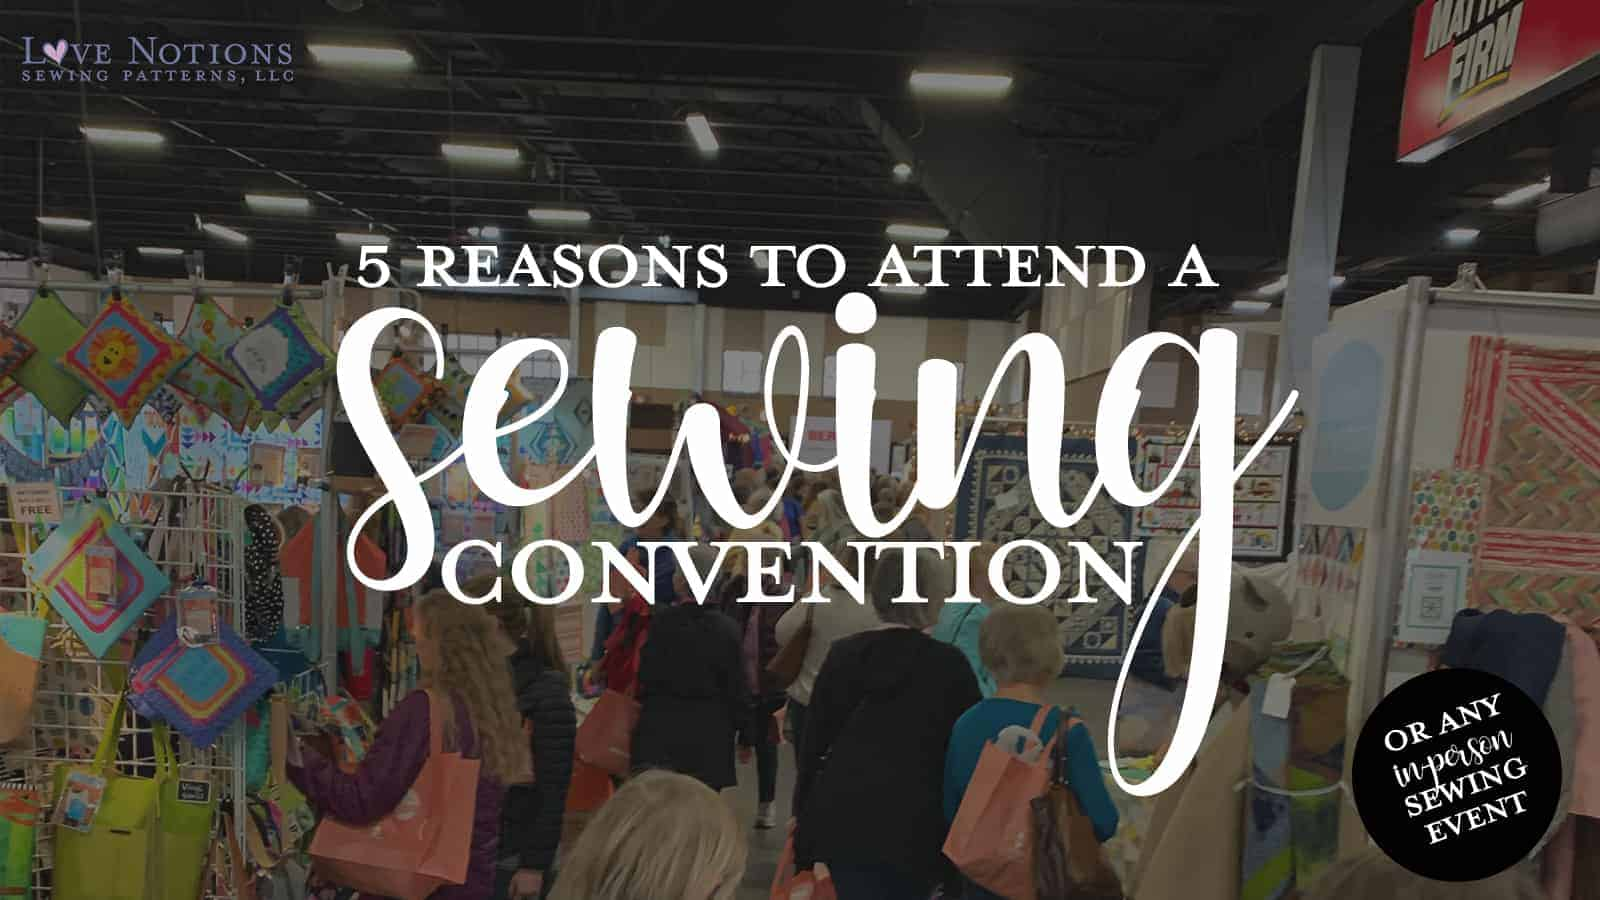 sew expo feature image